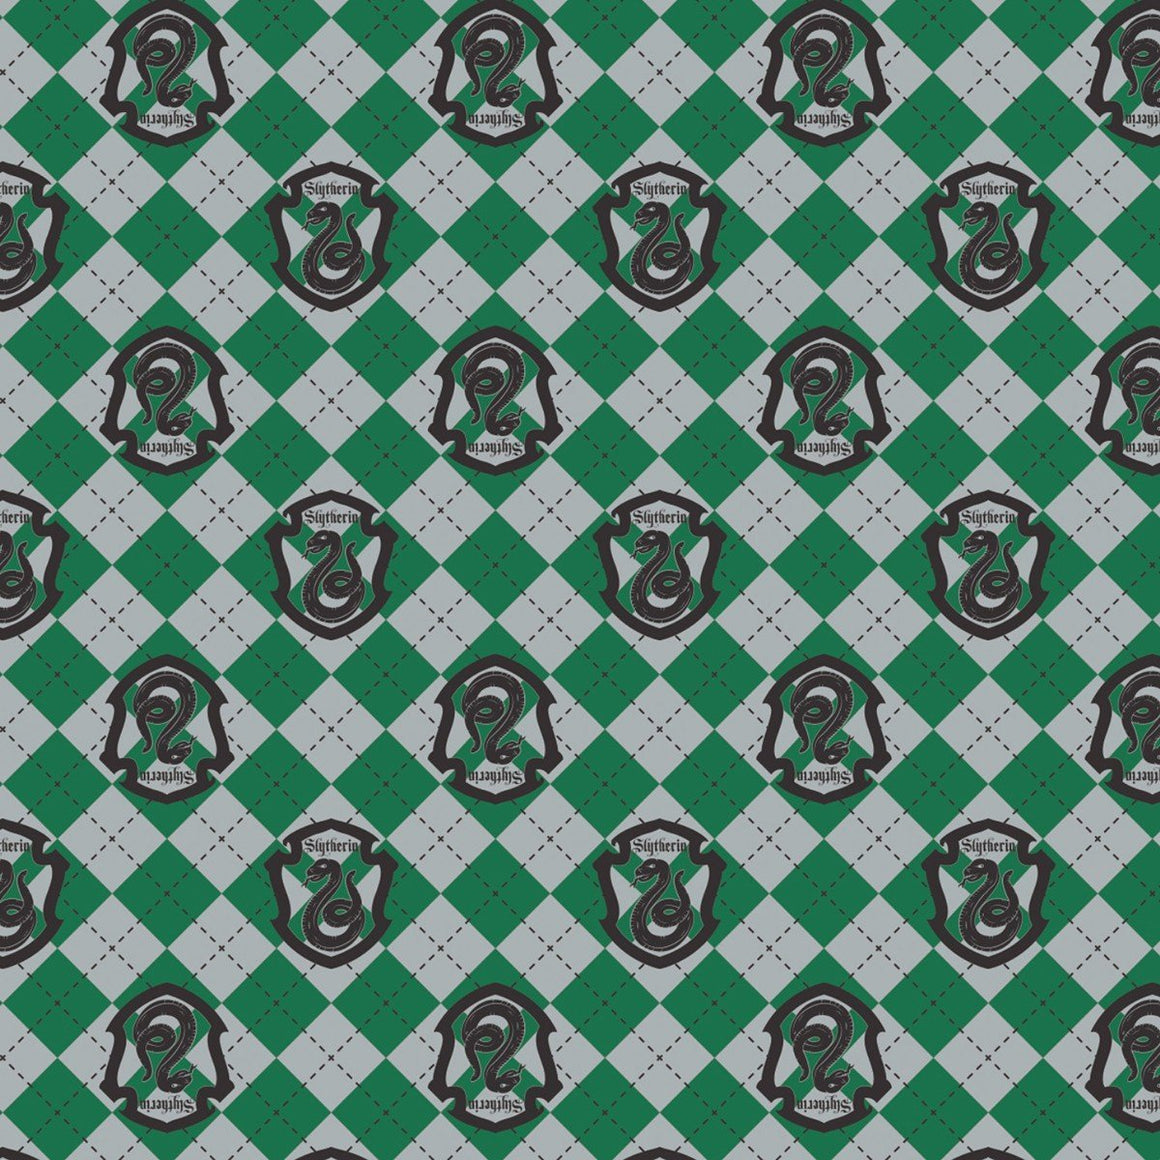 Green Grey and Black Slytherin Crest Harry Potter Argyle Flannel - Raspberry Creek Fabrics